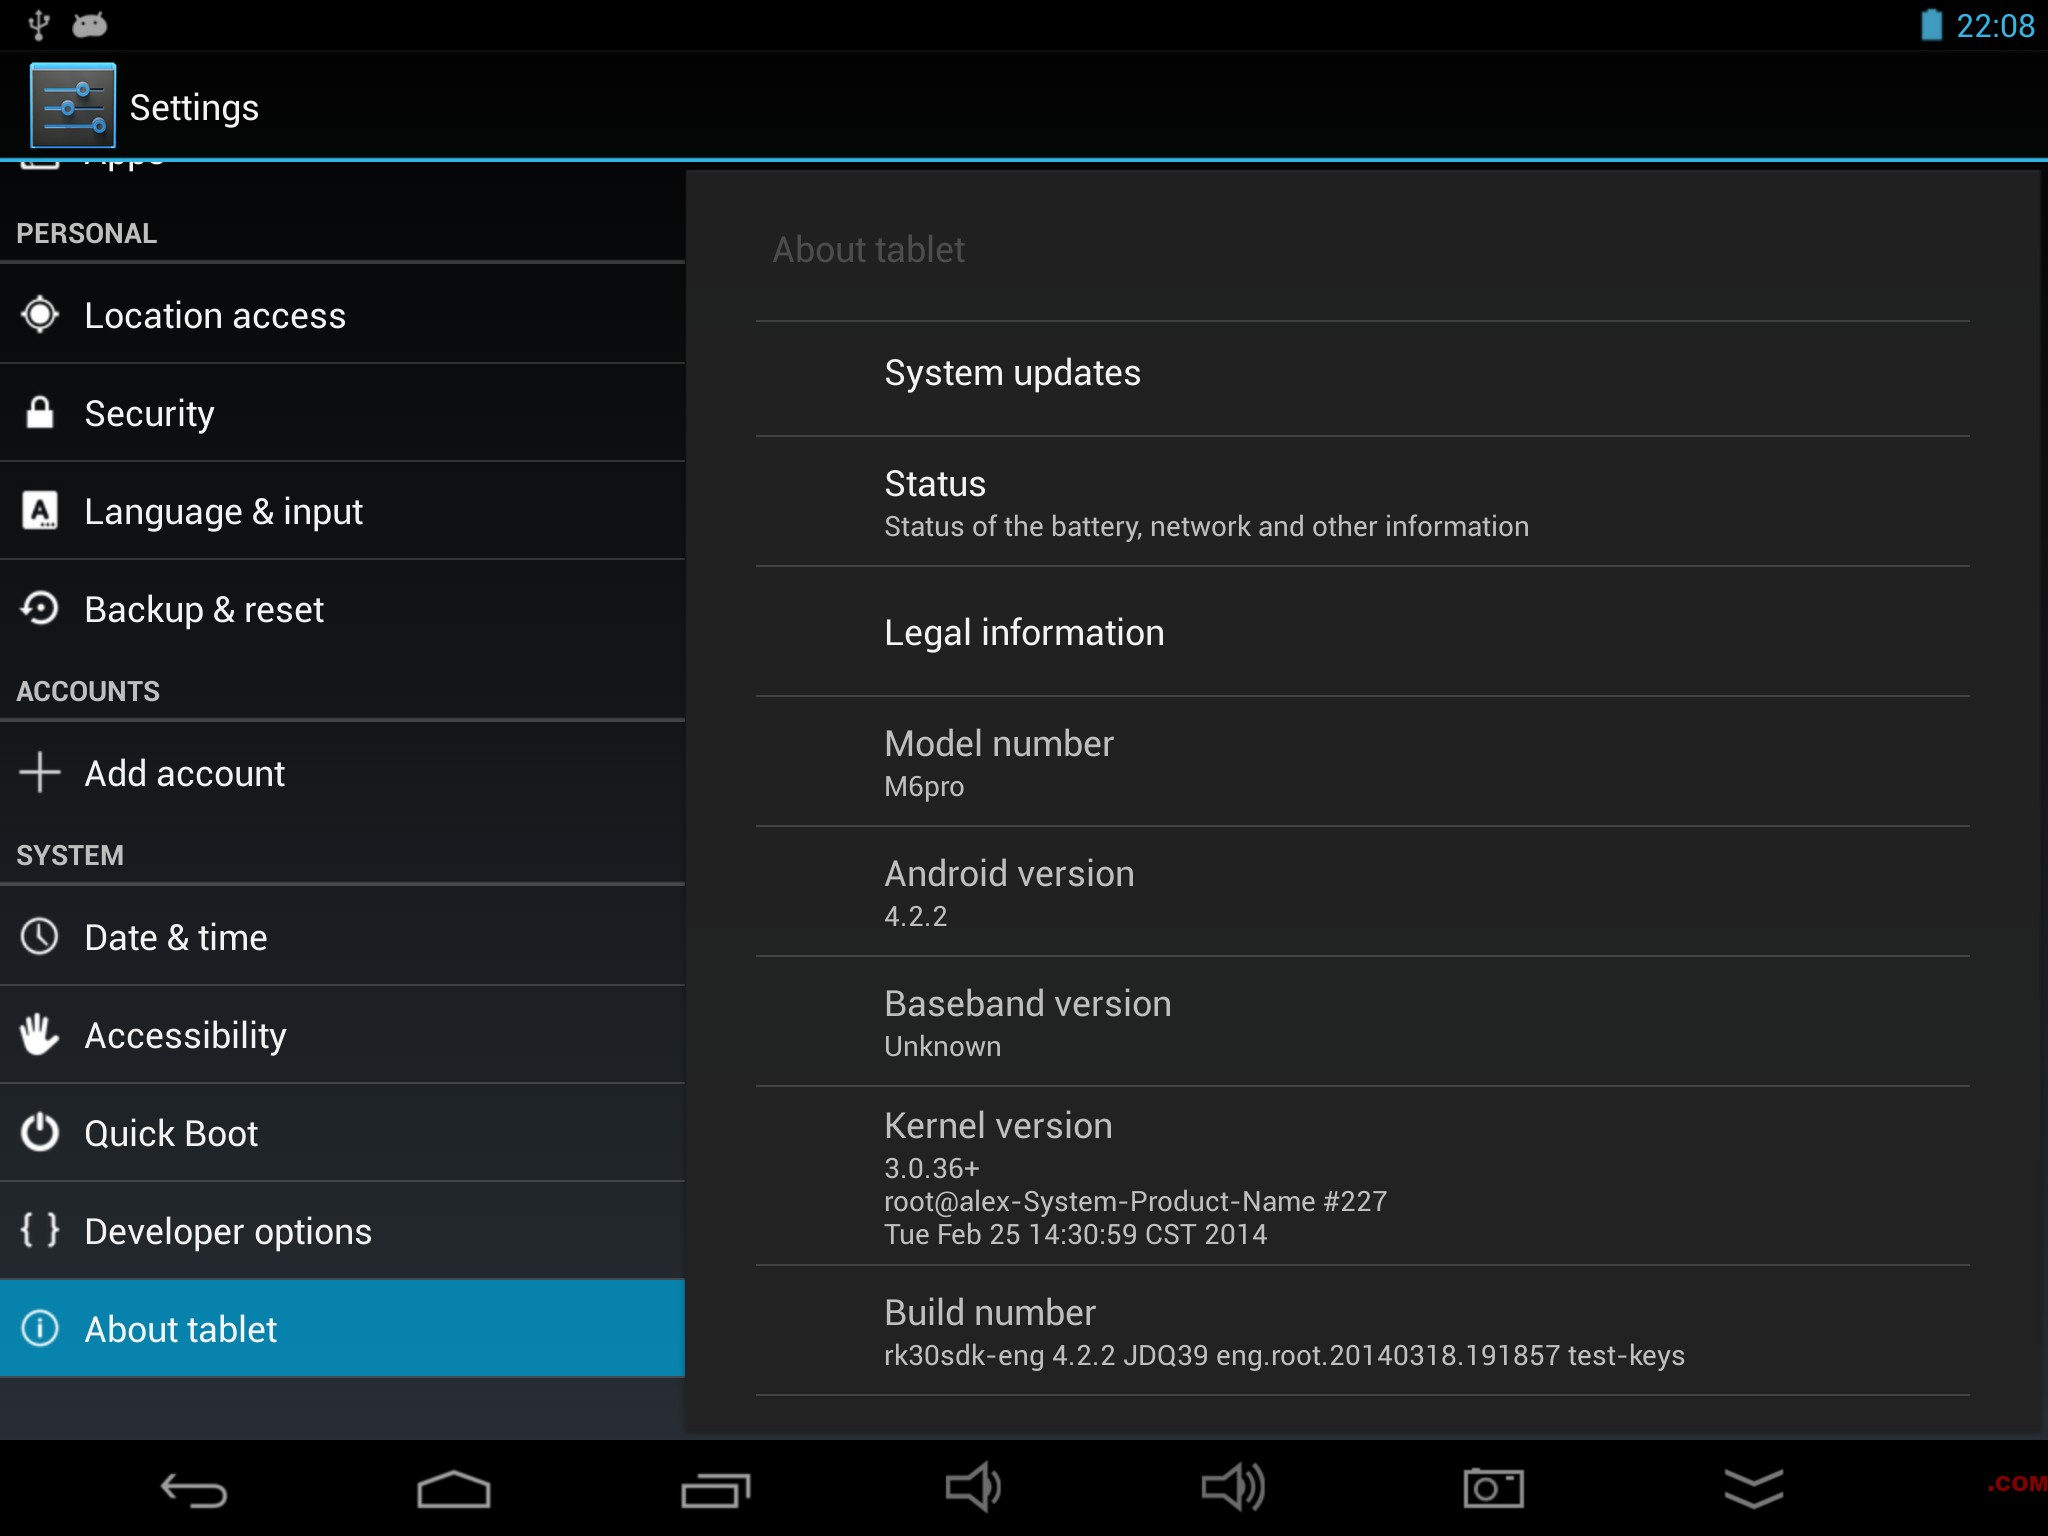 pipo_m6_pro_android422_20140318_settings_version.png